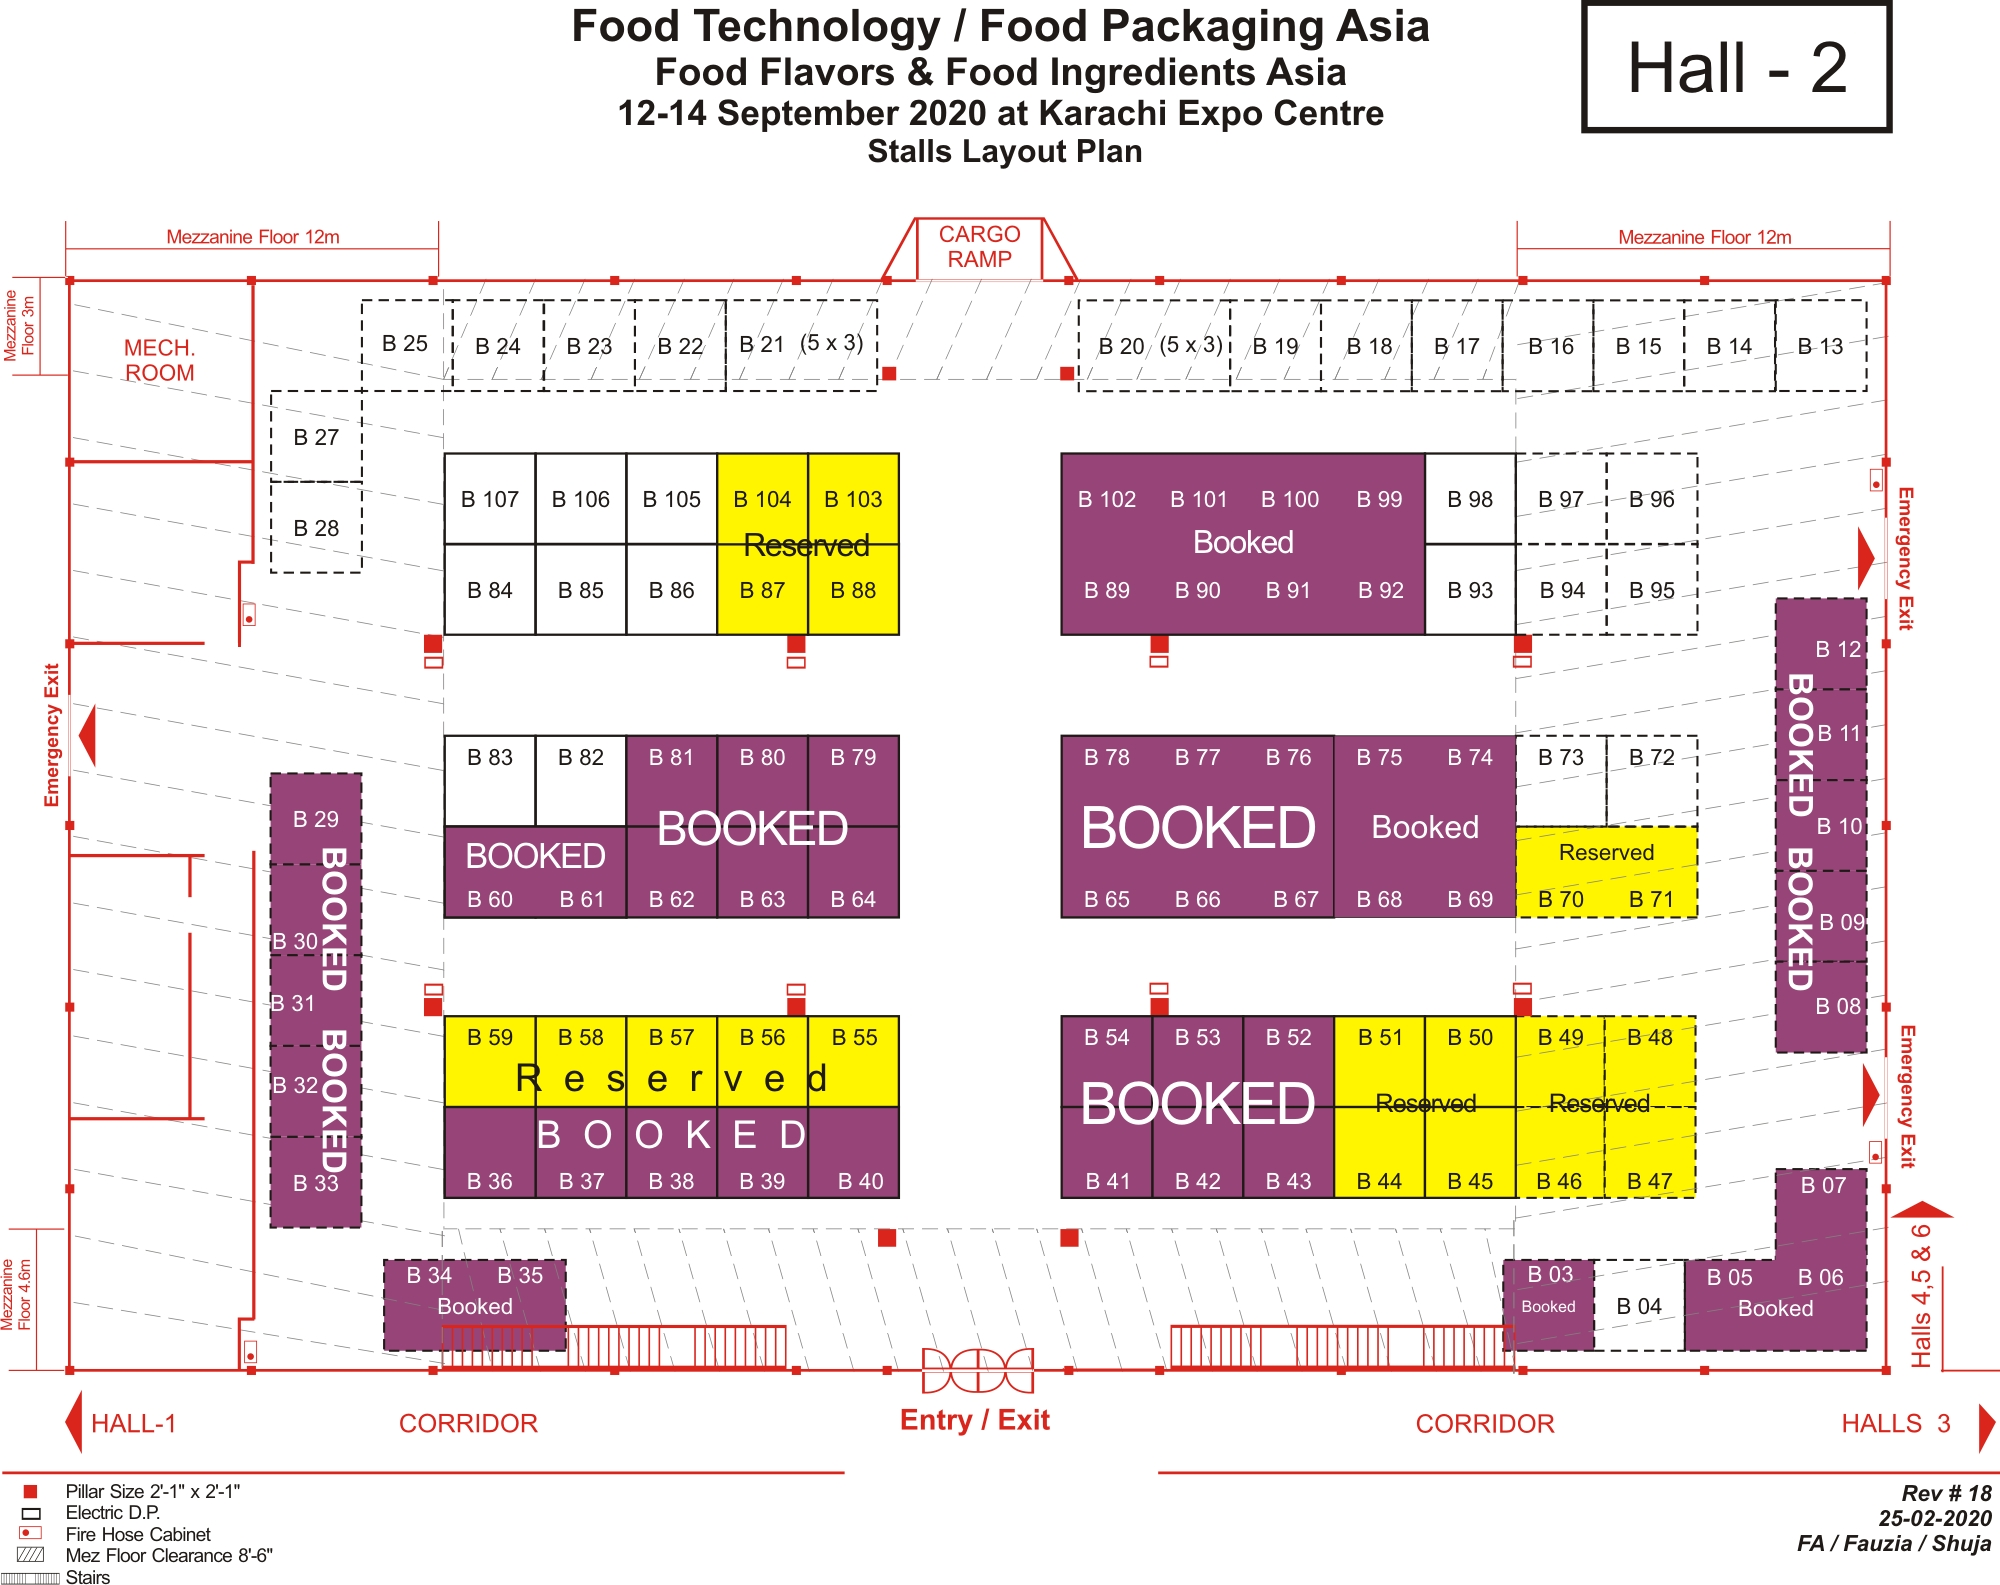 Food Agri Livestock Asia - Hall 2